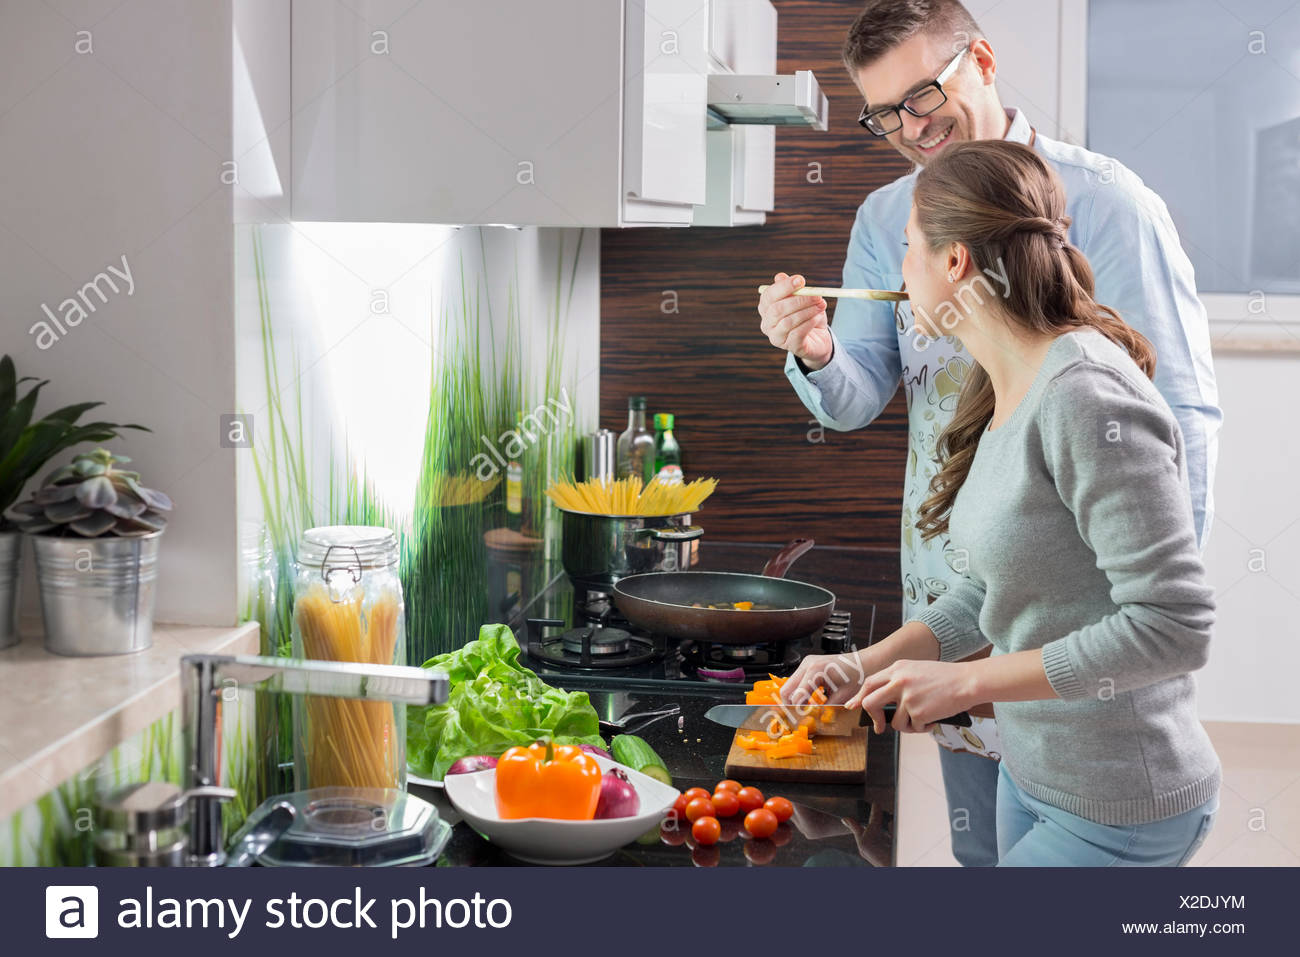 Happy man feeding food to woman cutting vegetables in kitchen - Stock Image